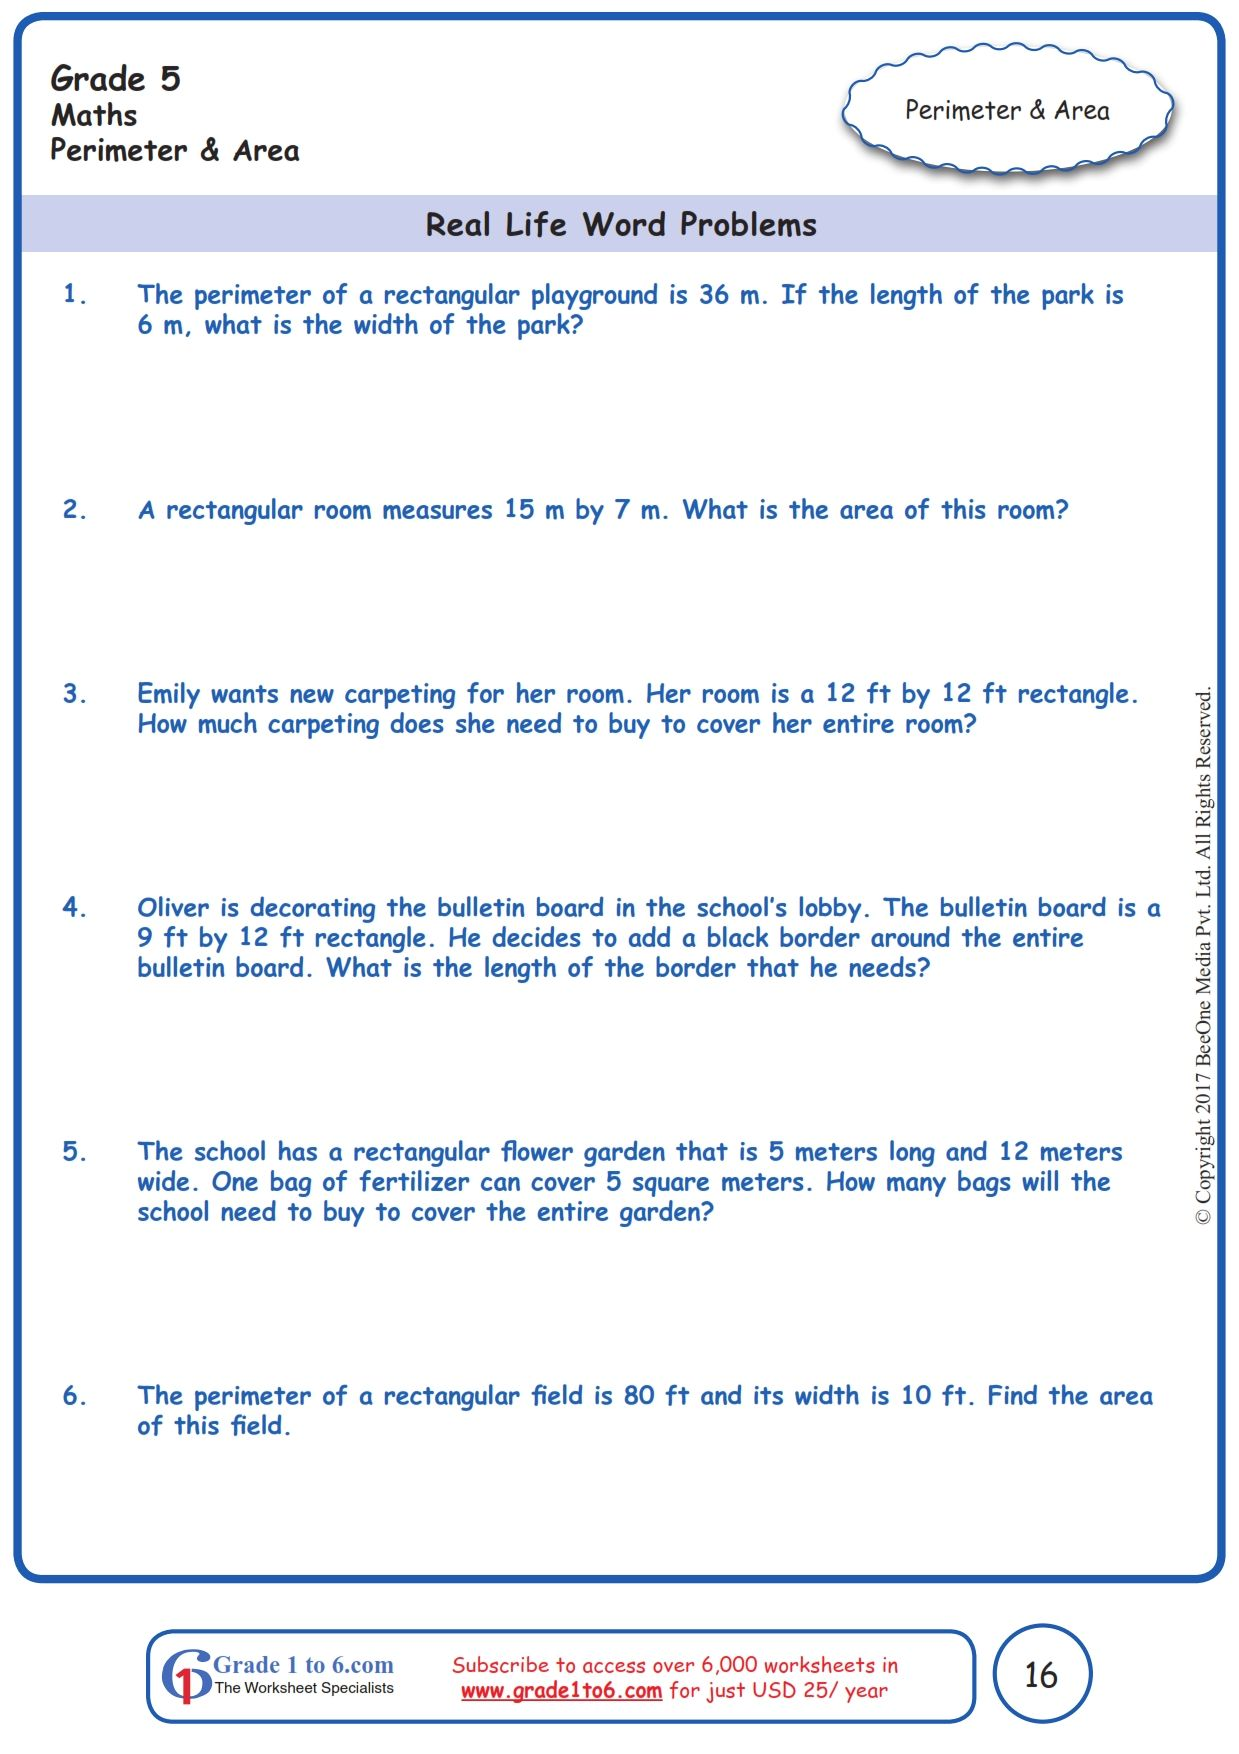 Worksheet Grade 5 Math Real Life Word Problems In